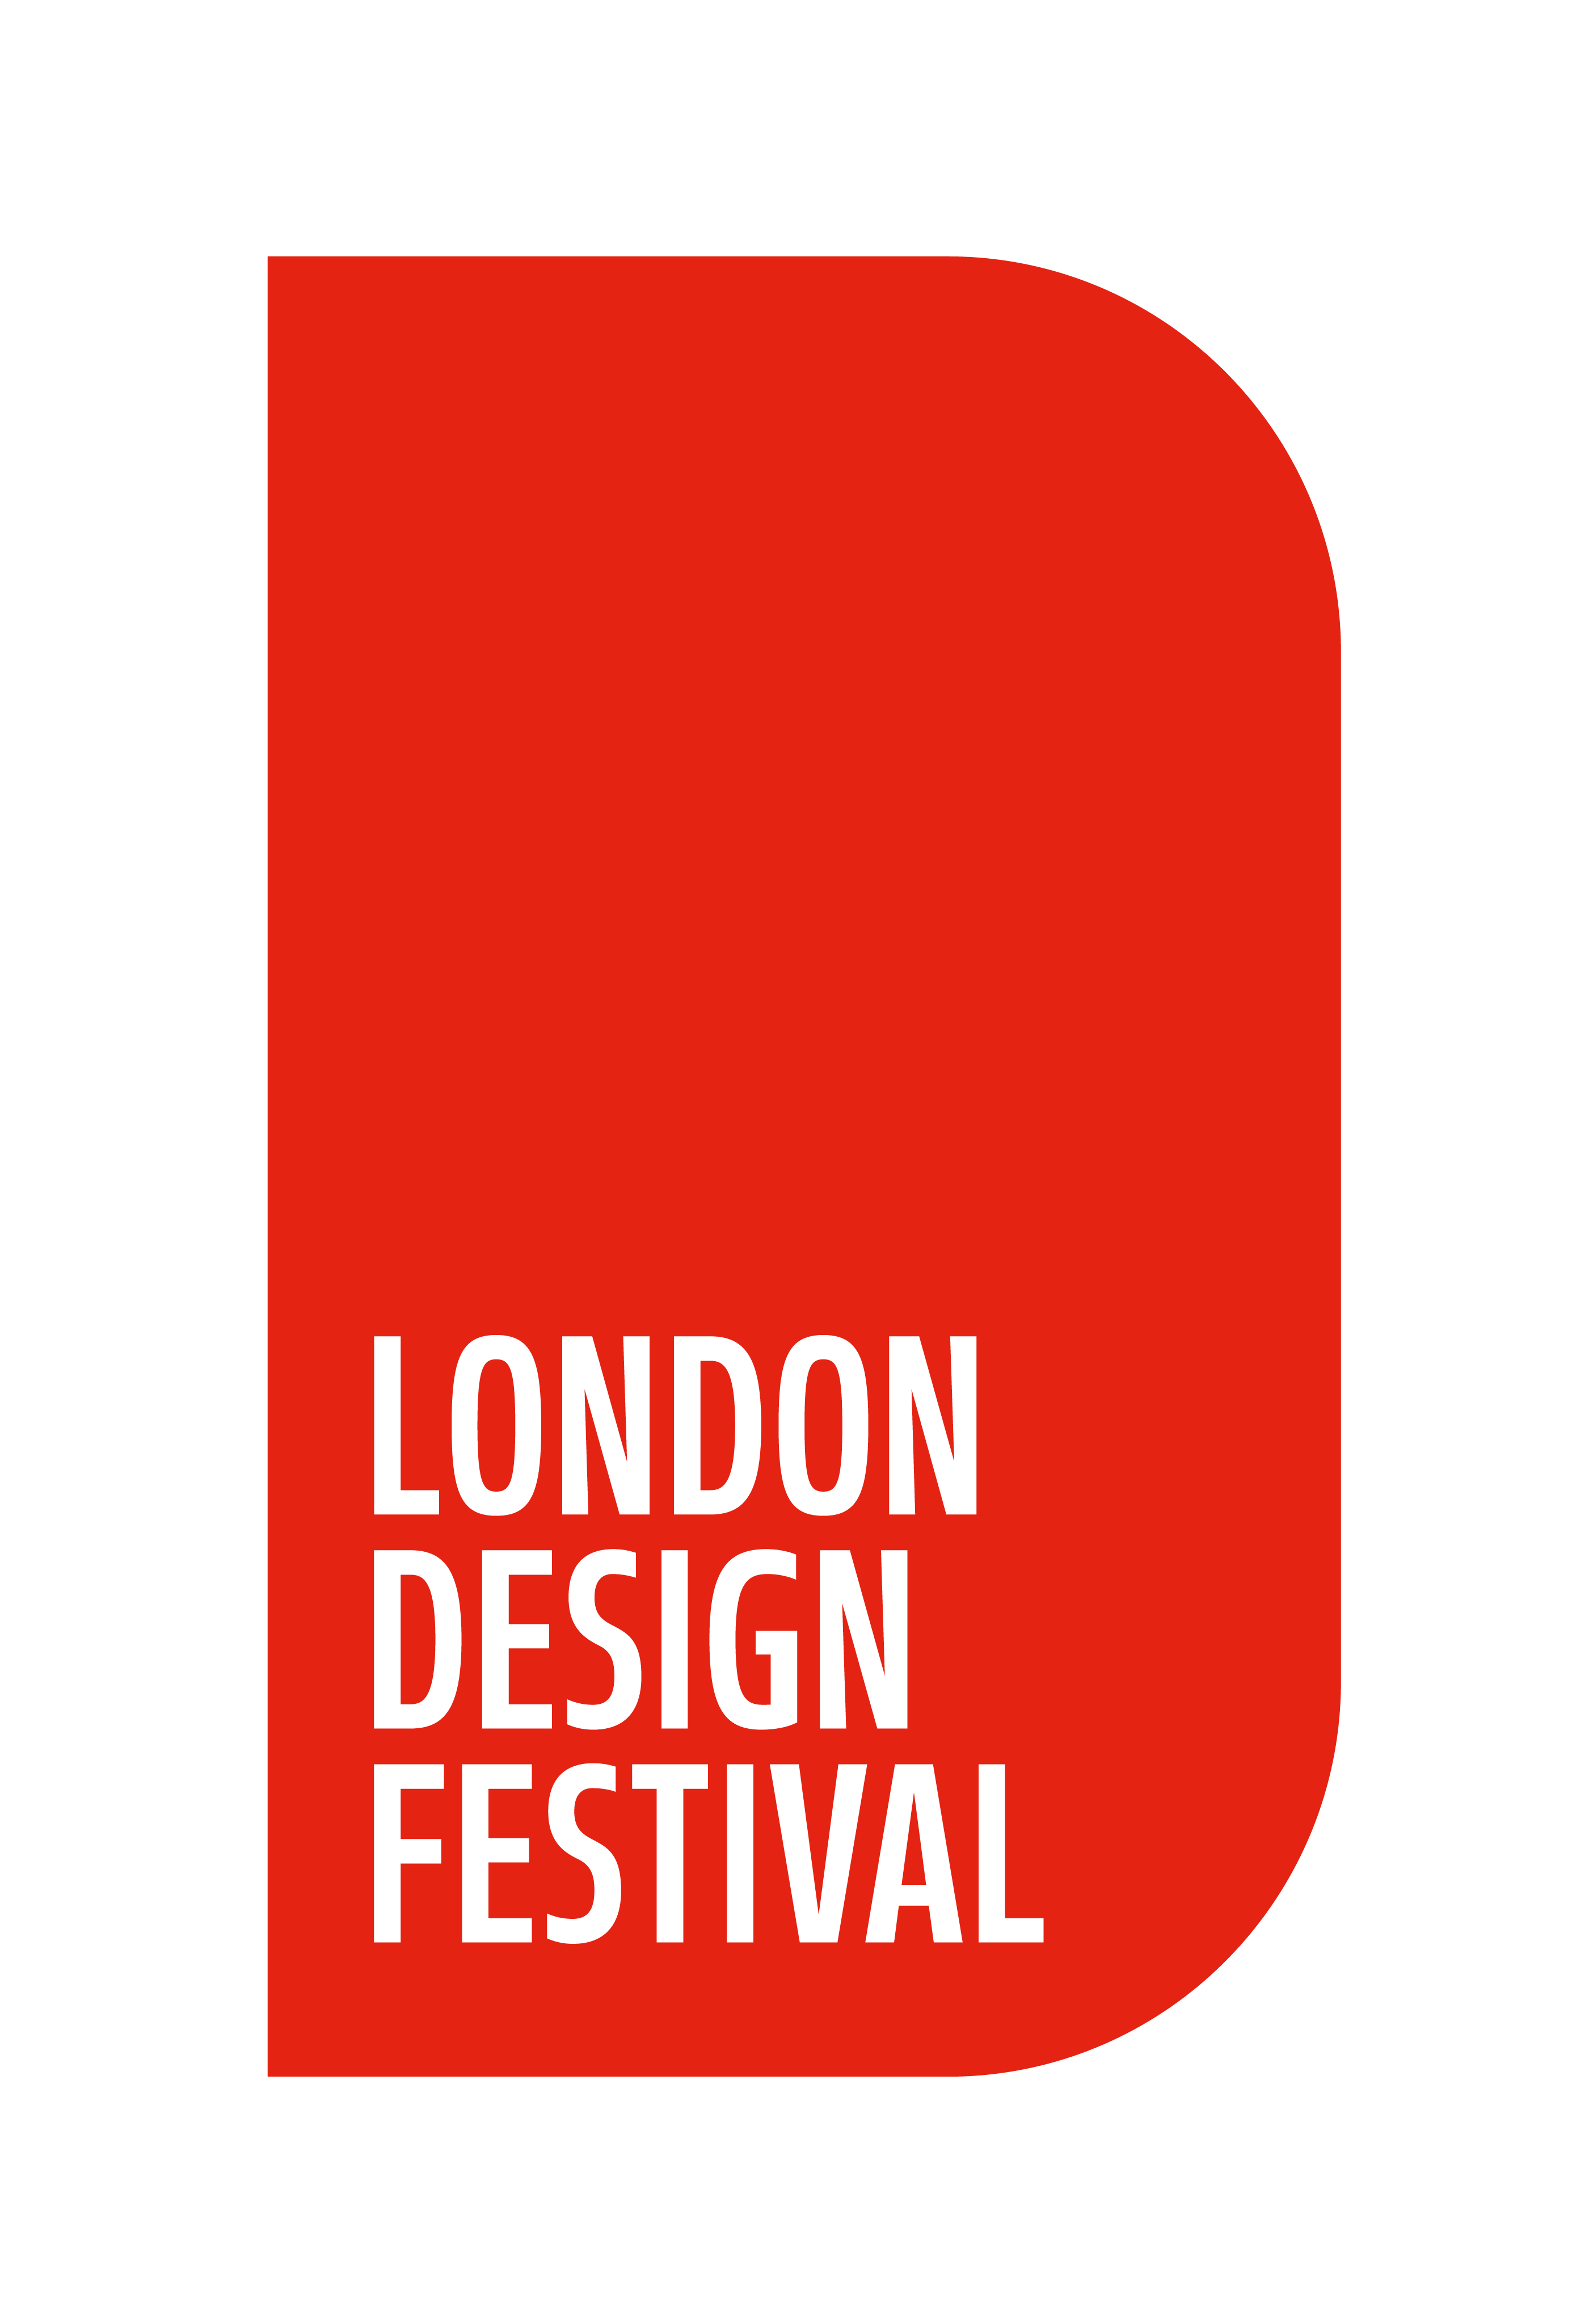 London Design Festival logo in red